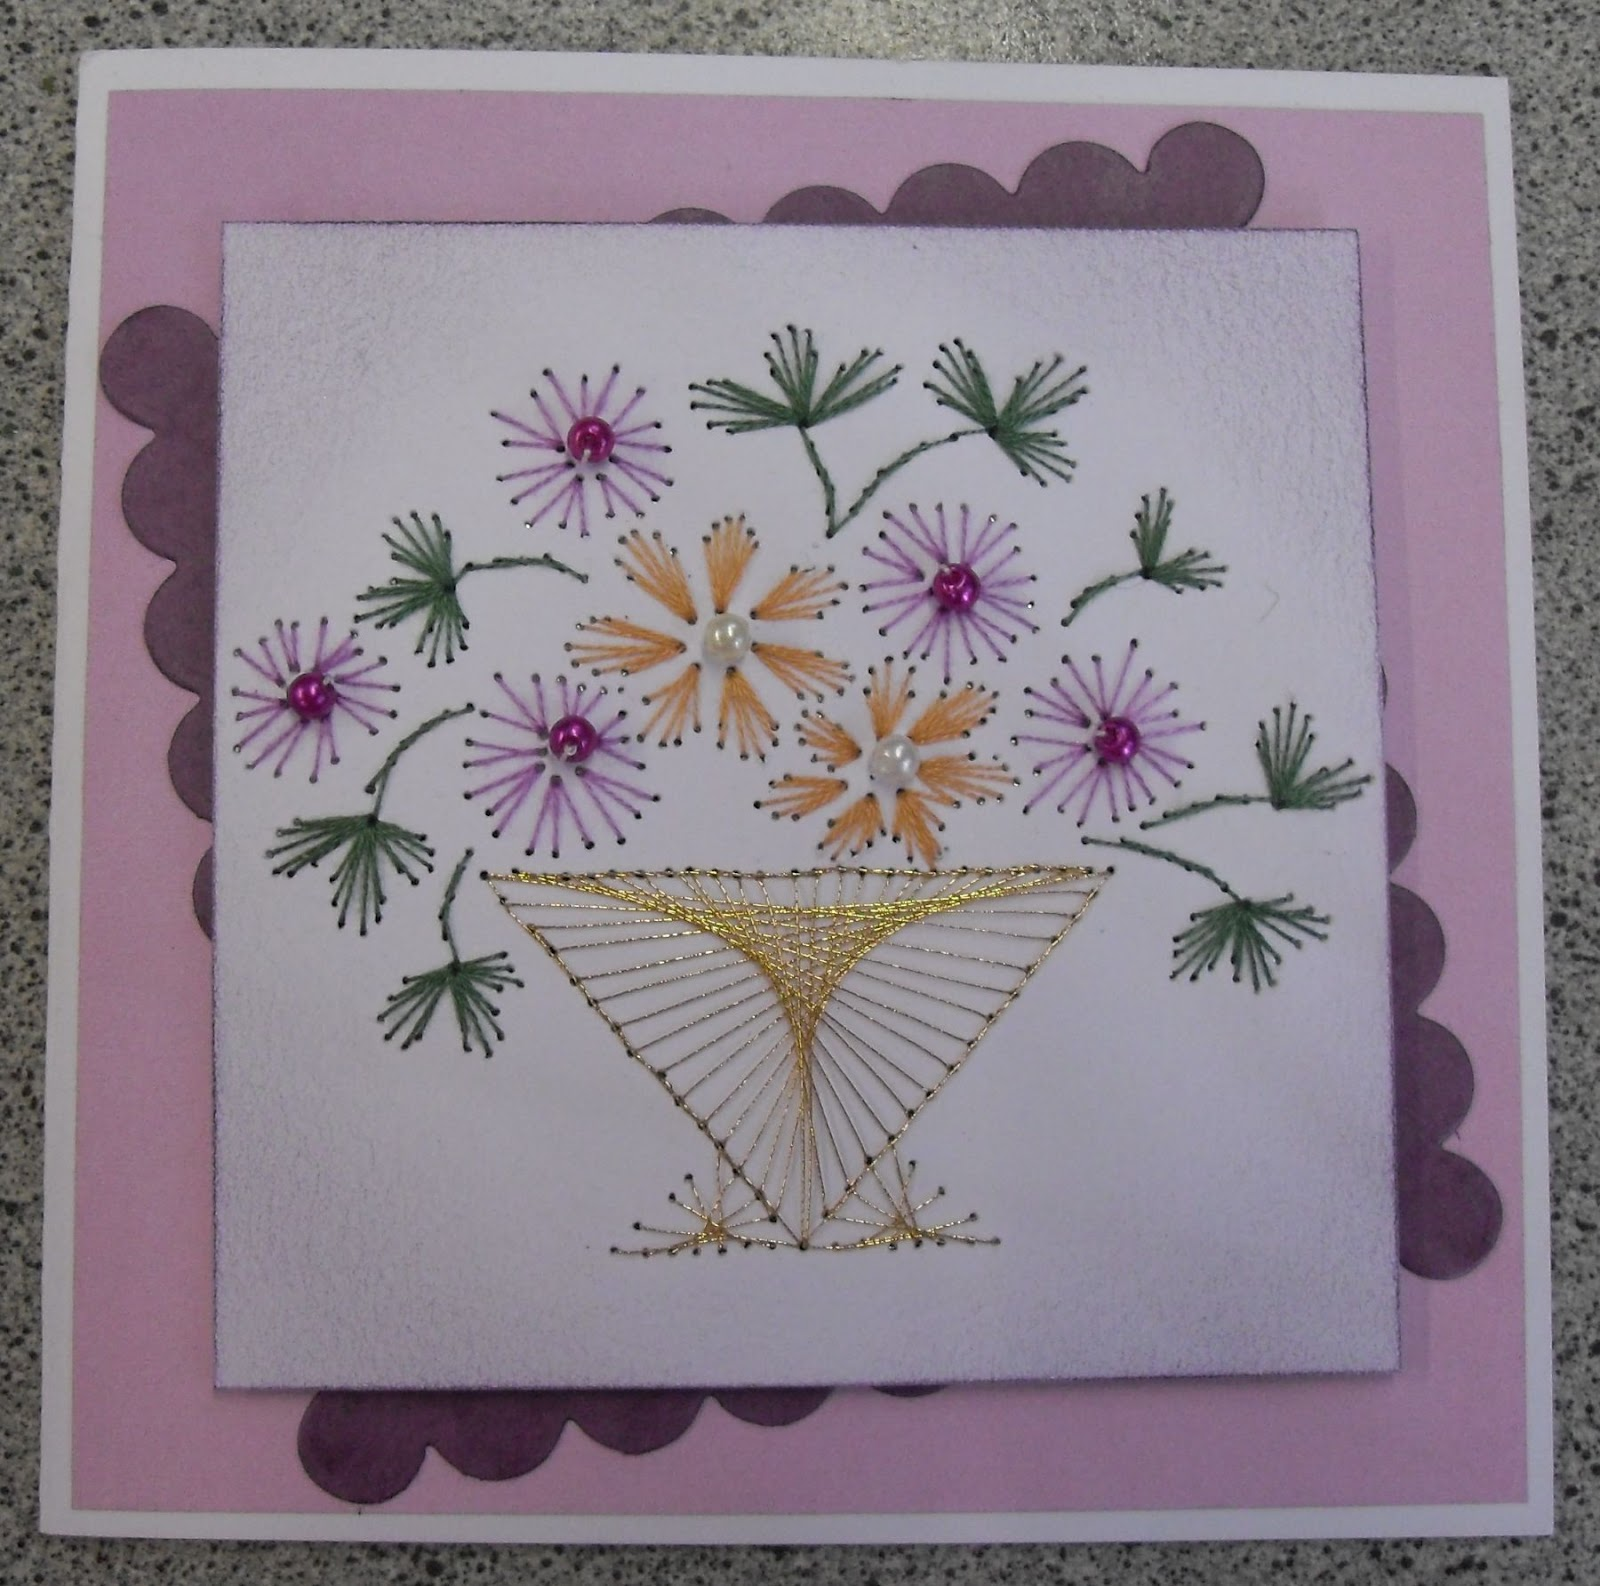 Stitching+Cards Card Crafts: 2 more Prick and Stitch cards